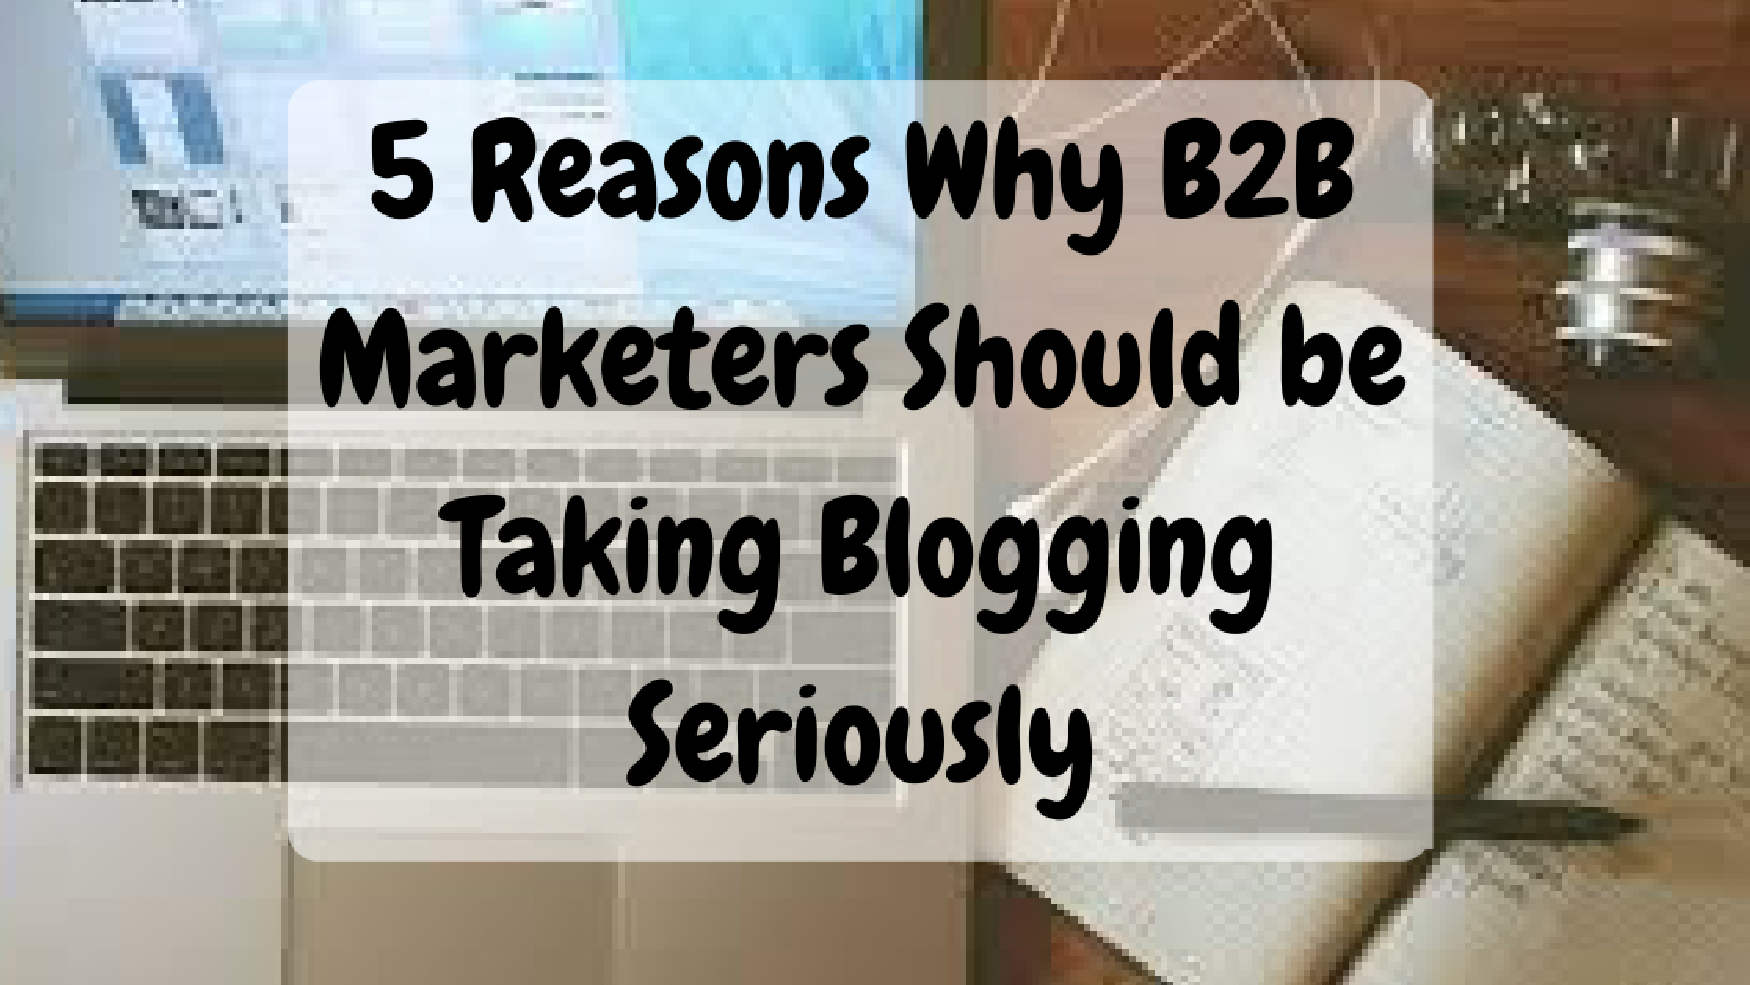 Five Reasons Why B2B Marketers Should be Taking Blogging Seriously